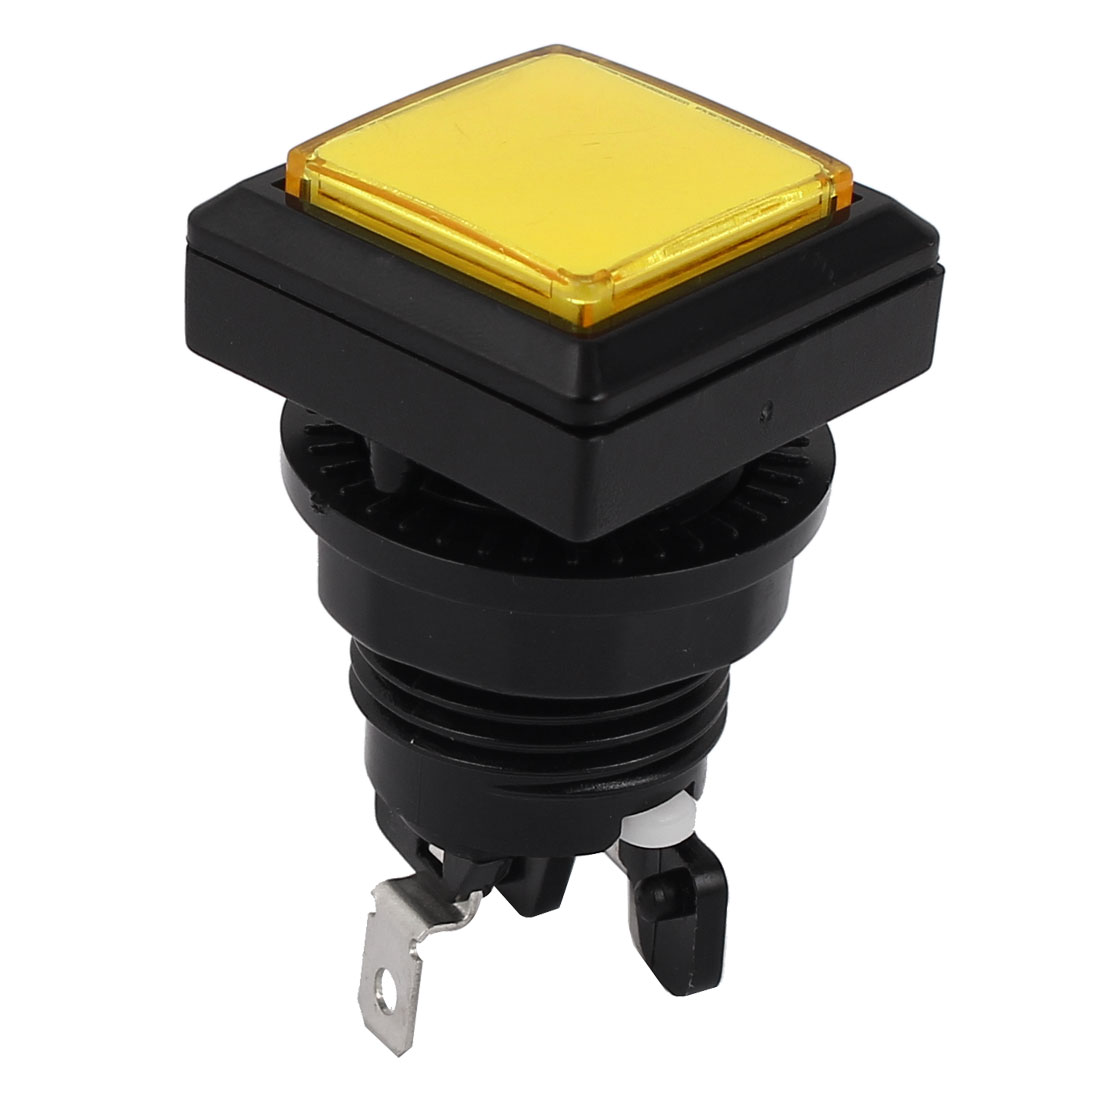 Momentary 2 Terminal SPST Yellow Square Push Button Switch for Game Machine